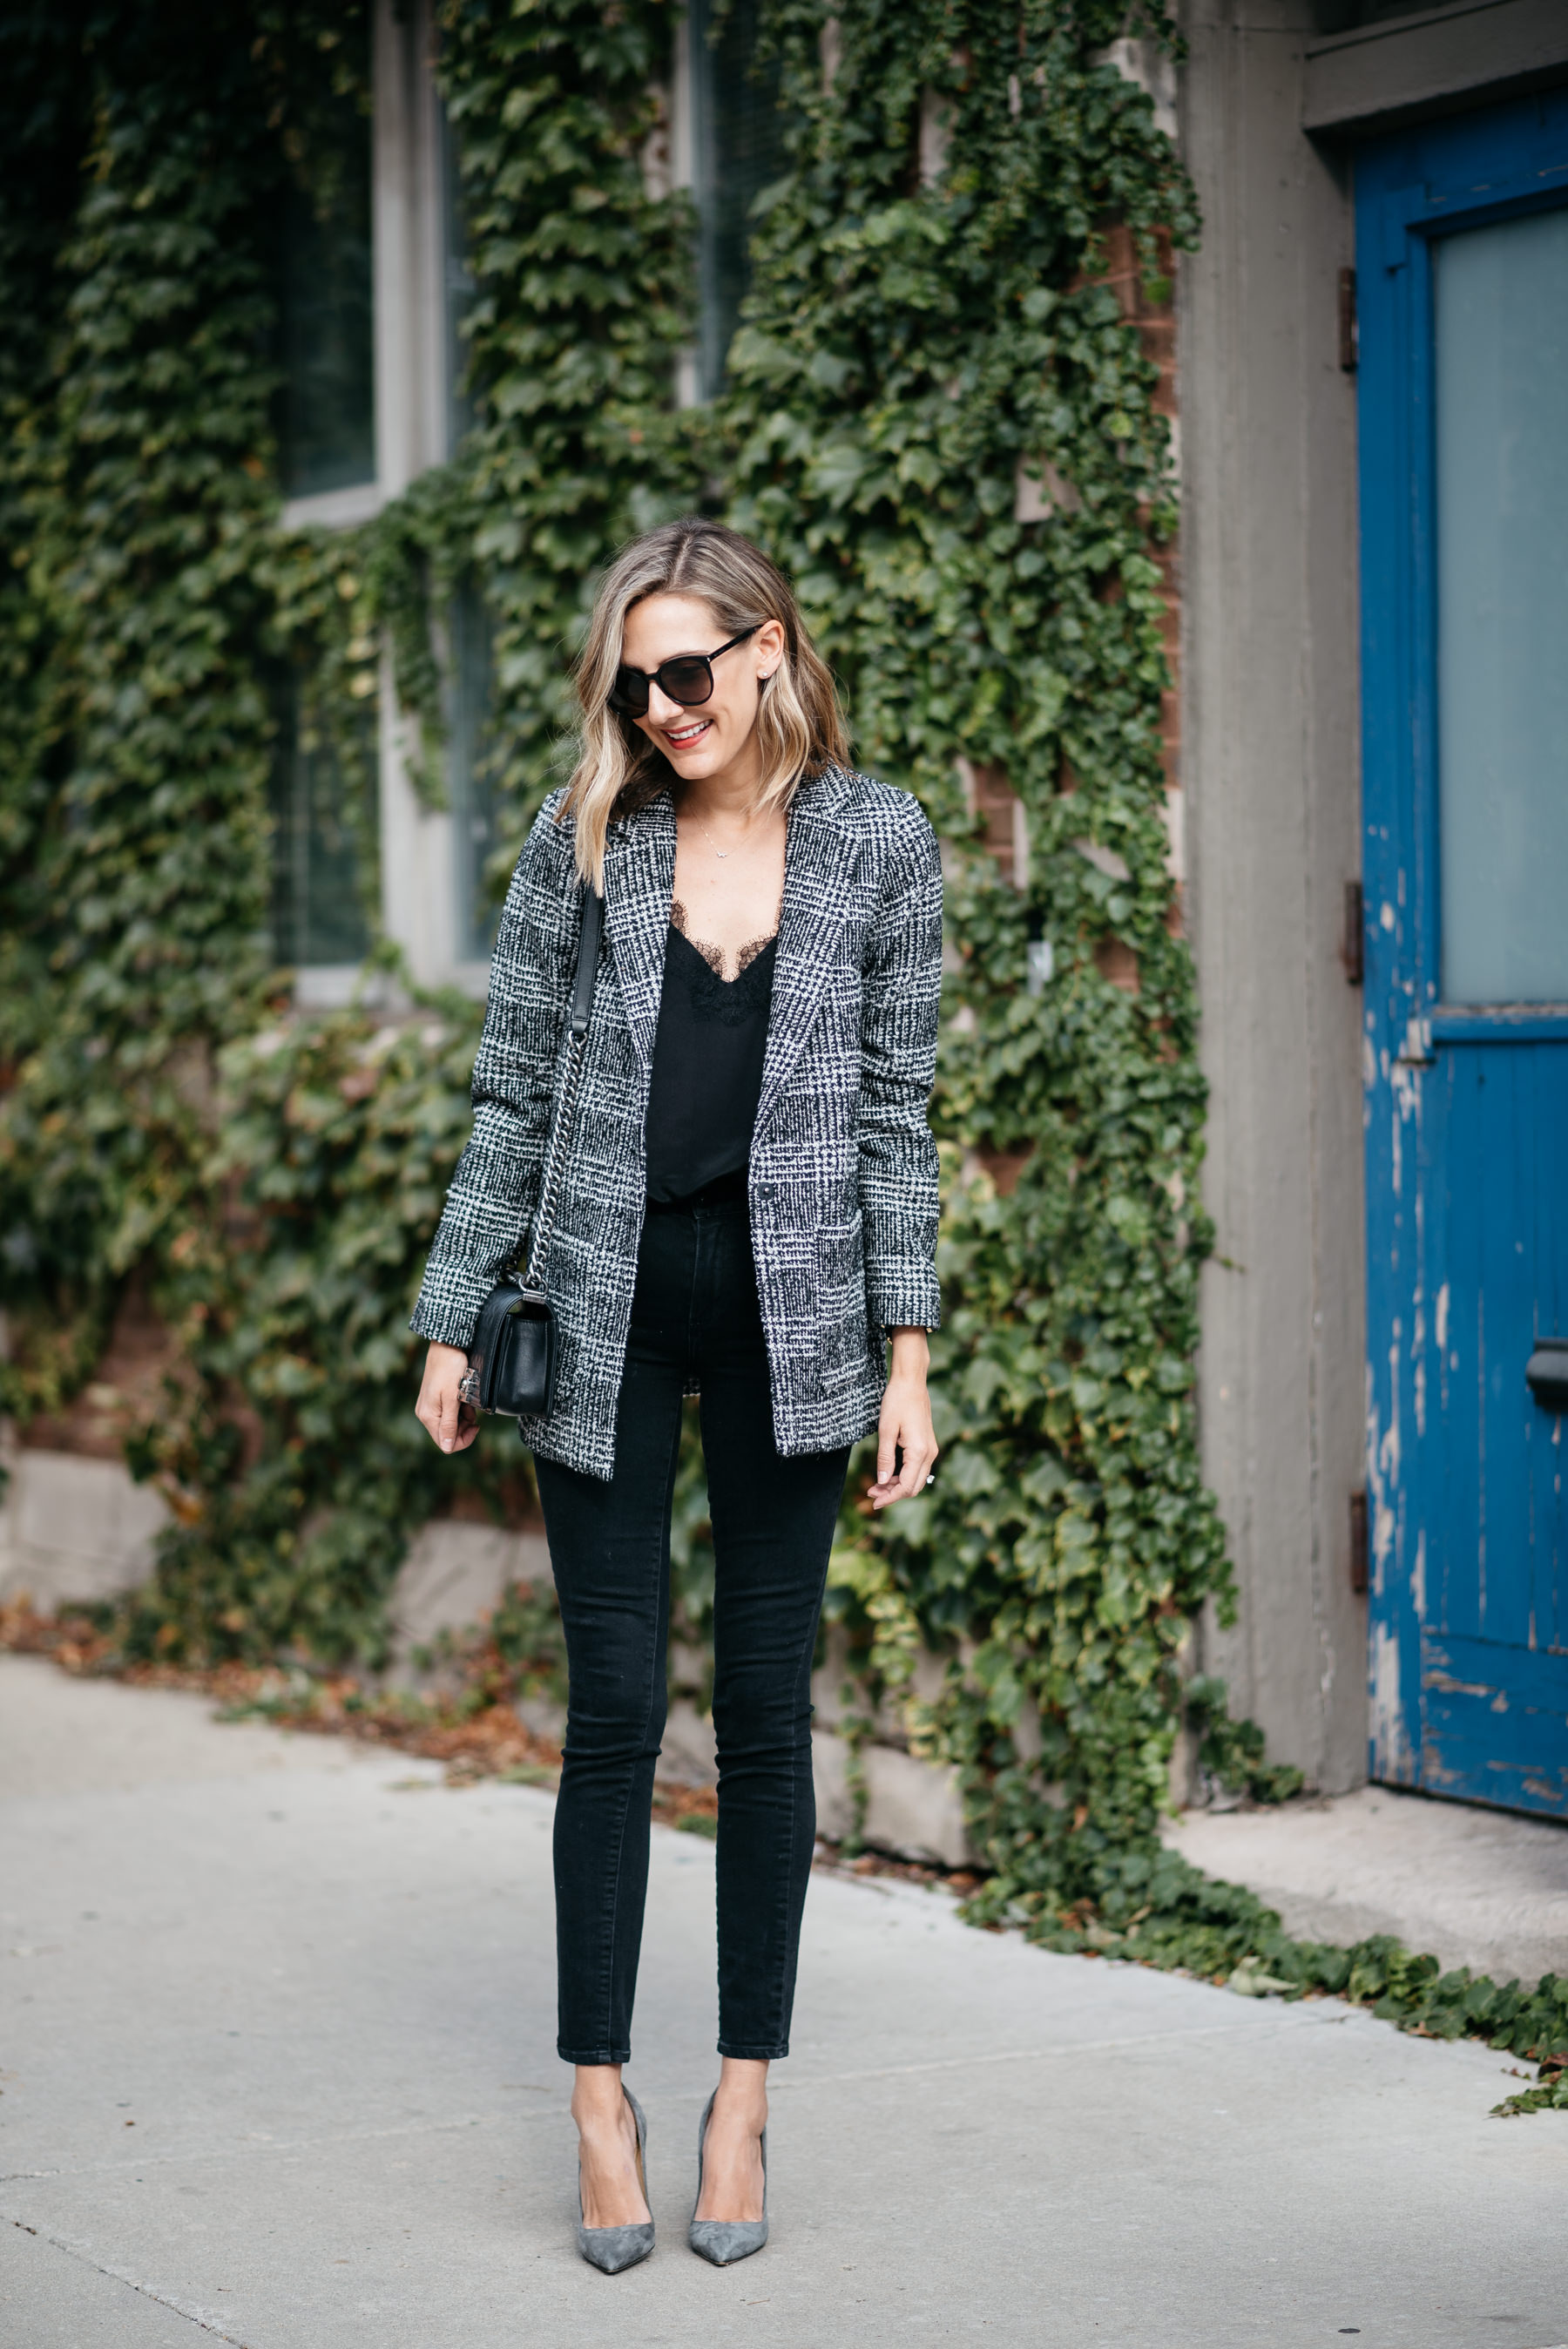 plaid boyfriend check blazer outfit